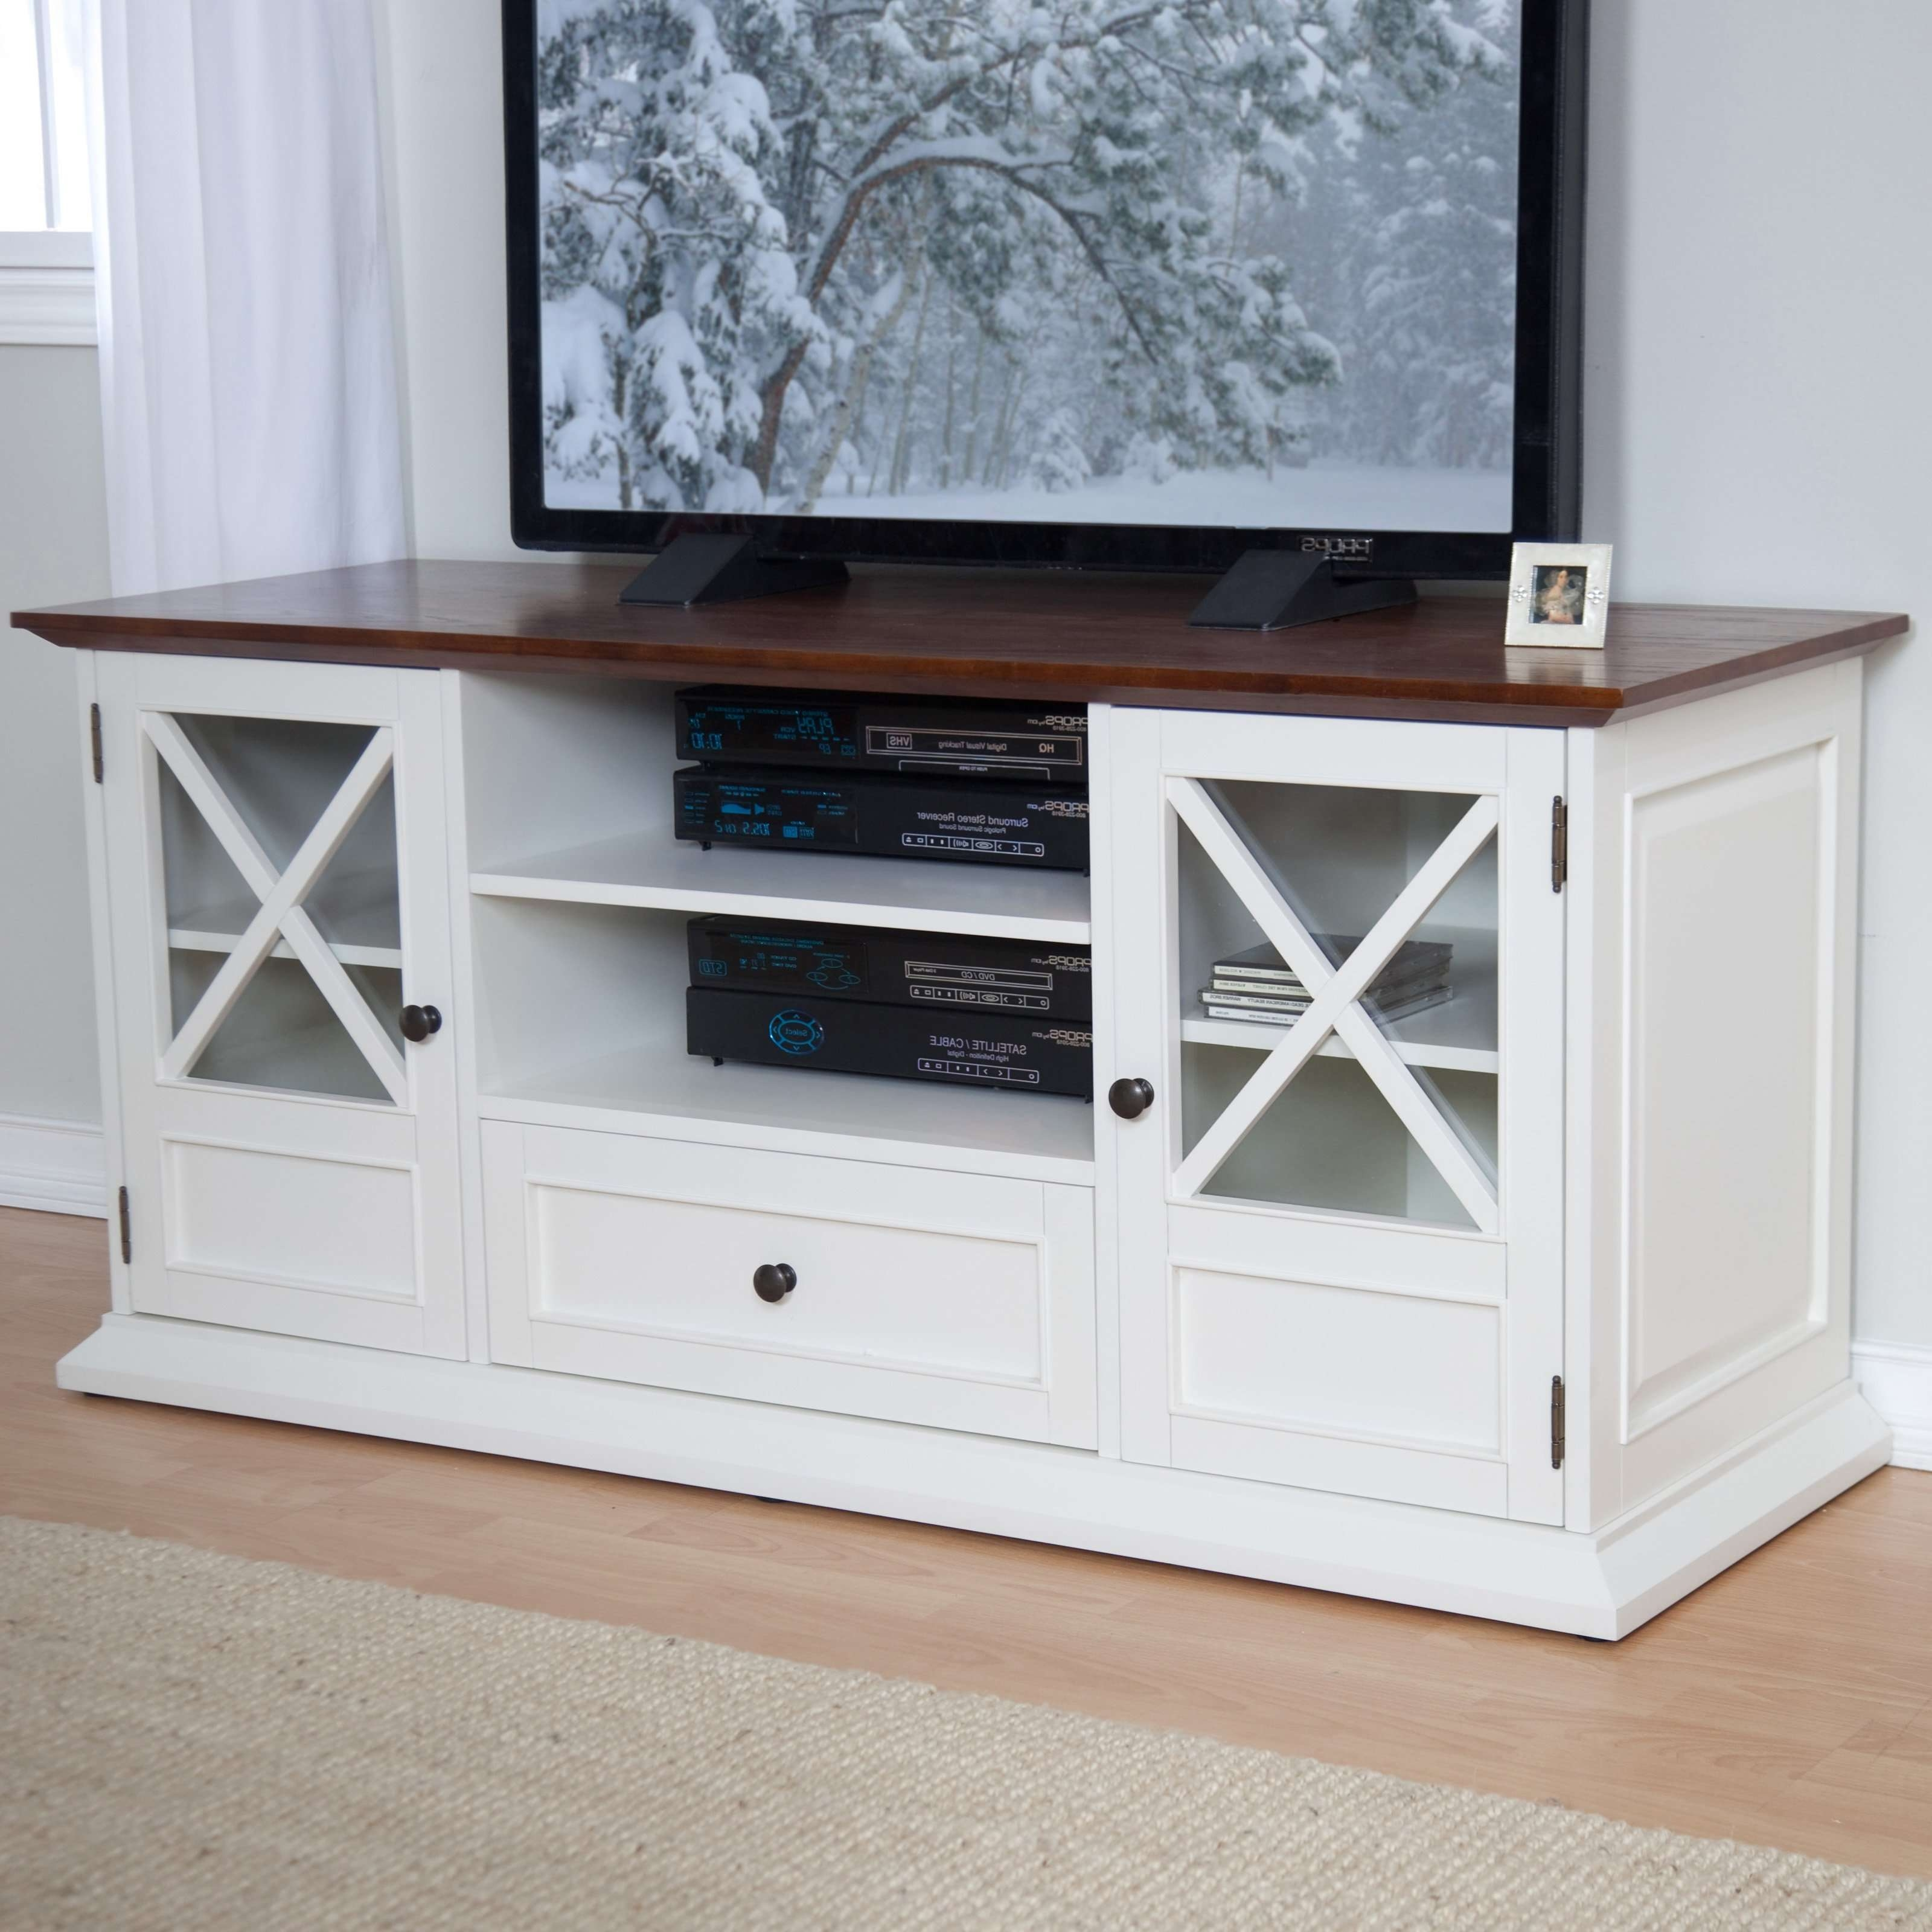 Belham Living Hampton Tv Stand – White/oak | Hayneedle For White Tv Cabinets (View 2 of 20)